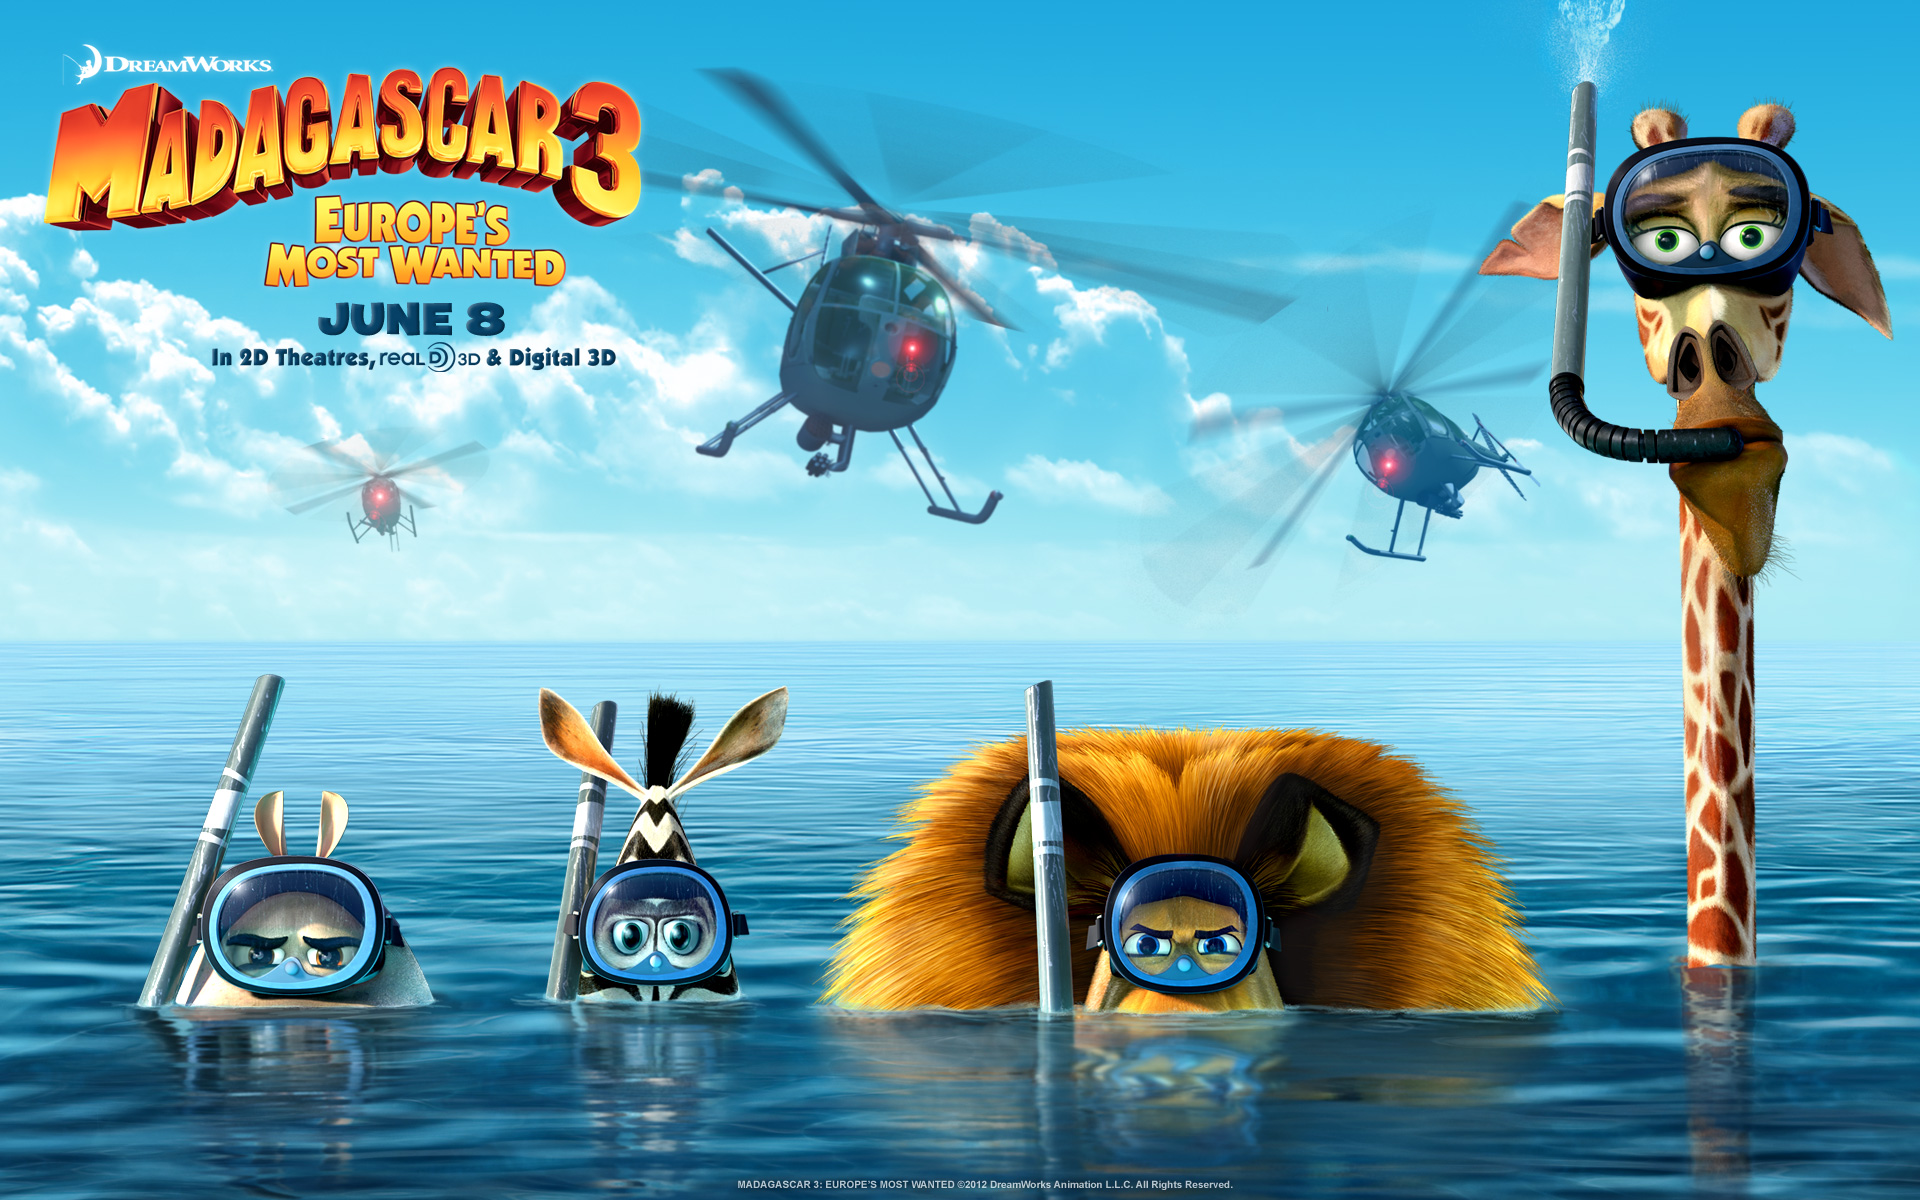 Madagascar 3 2012 Movie 1039.26 Kb